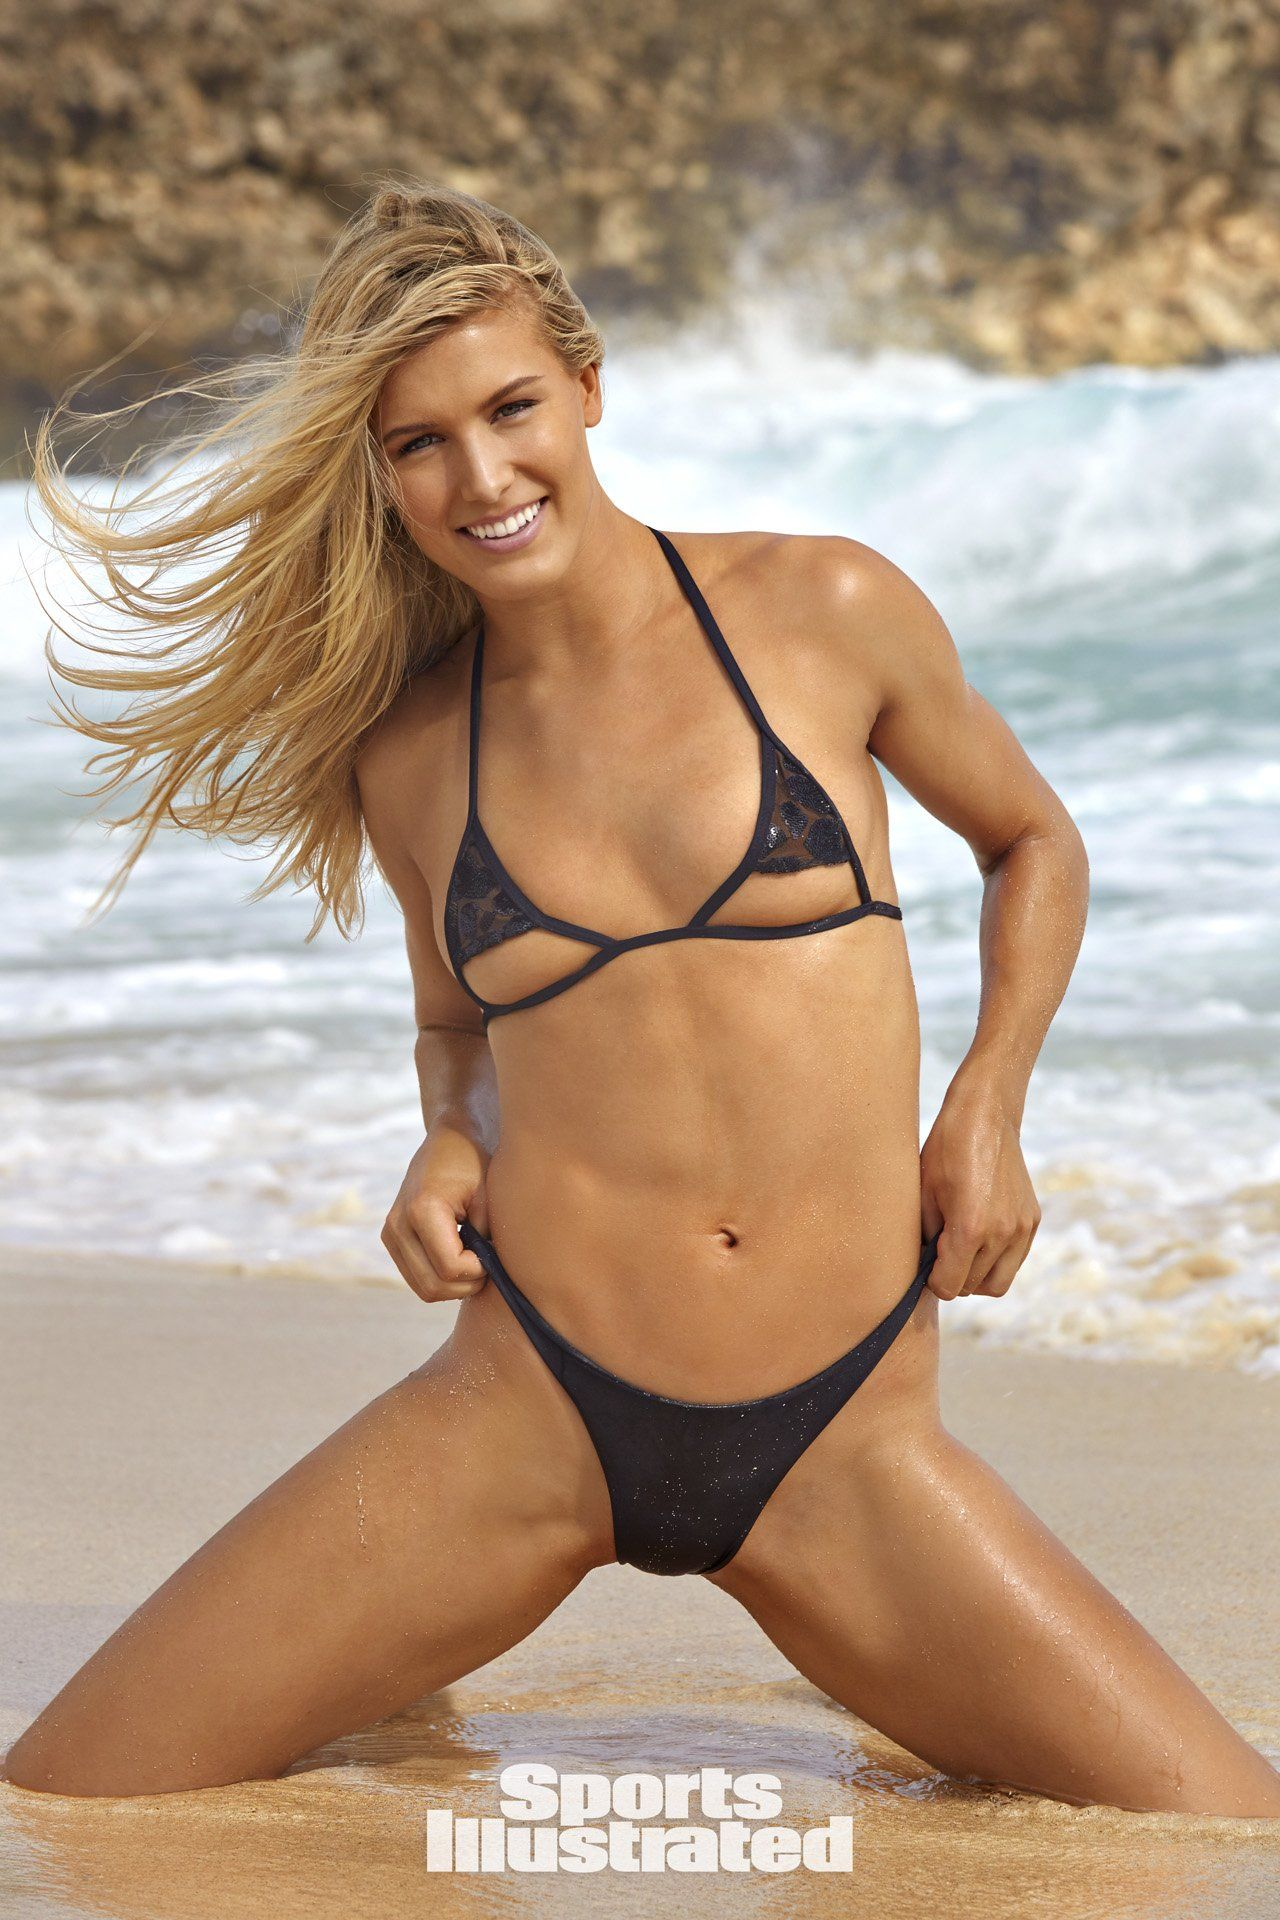 852a541f6ff Genie Bouchard was photographed by James Macari in Aruba. Swimsuit Top by  Haus Of PinkLemonaid. Swimsuit Bottom by Mikoh.